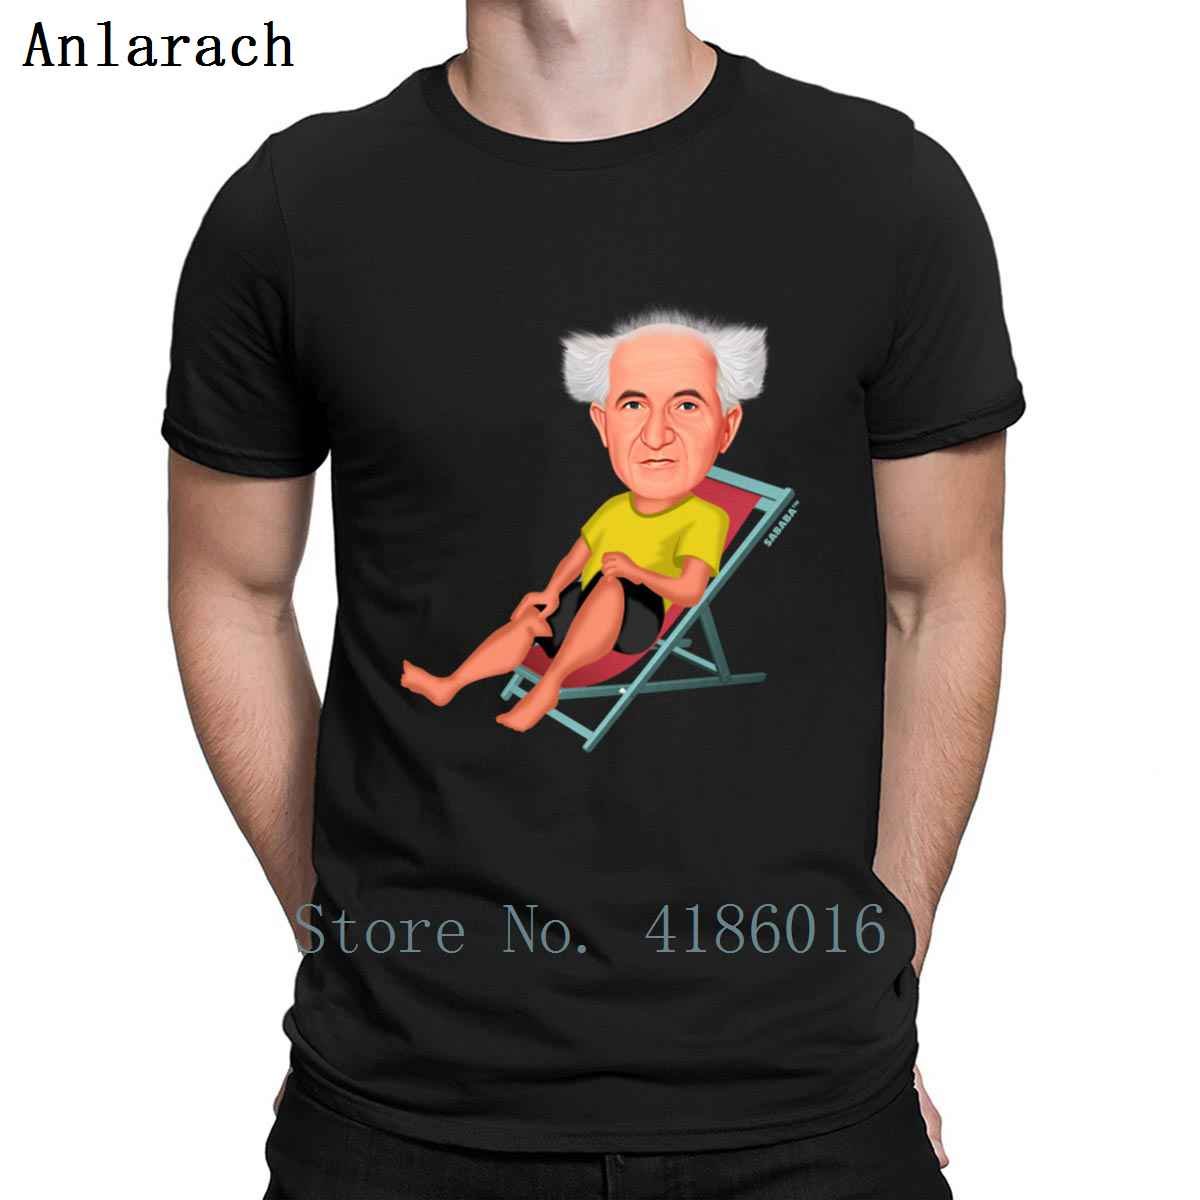 David Ben Gurion Israel First Prime Minister T Shirt Sunlight Cool Funny Casual Euro Size S-5xl Normal Designing Tee Shirt Shirt